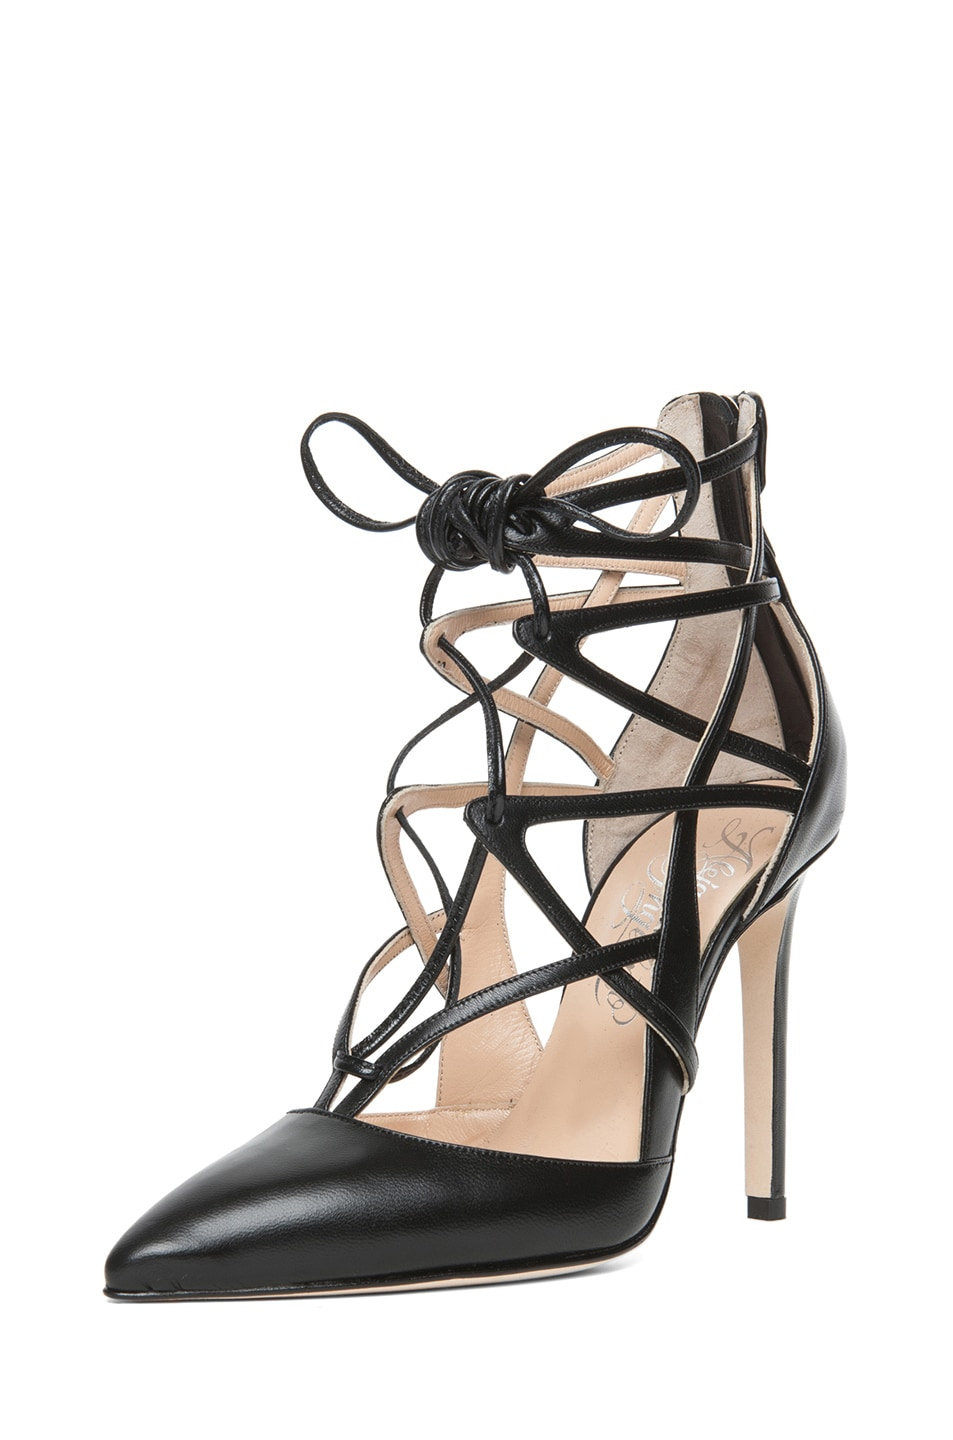 Image 2 of Alejandro Ingelmo Boomerang Calfskin Leather Lace Up Pump in Black